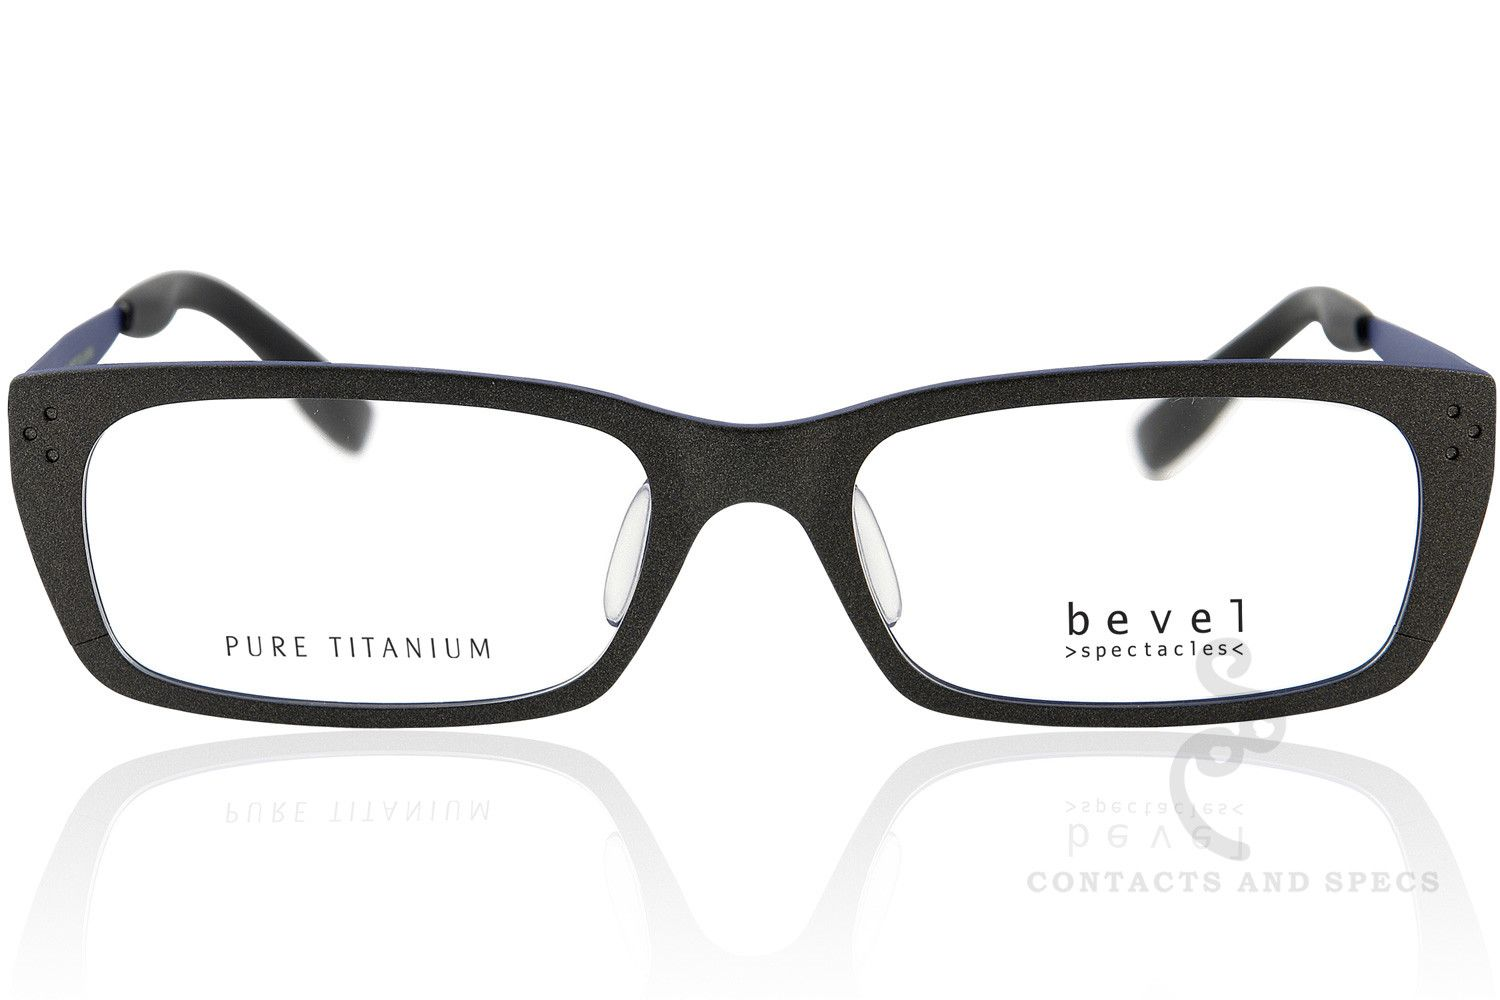 Bevel Spectacles W.F.M. | Products | Pinterest | Products